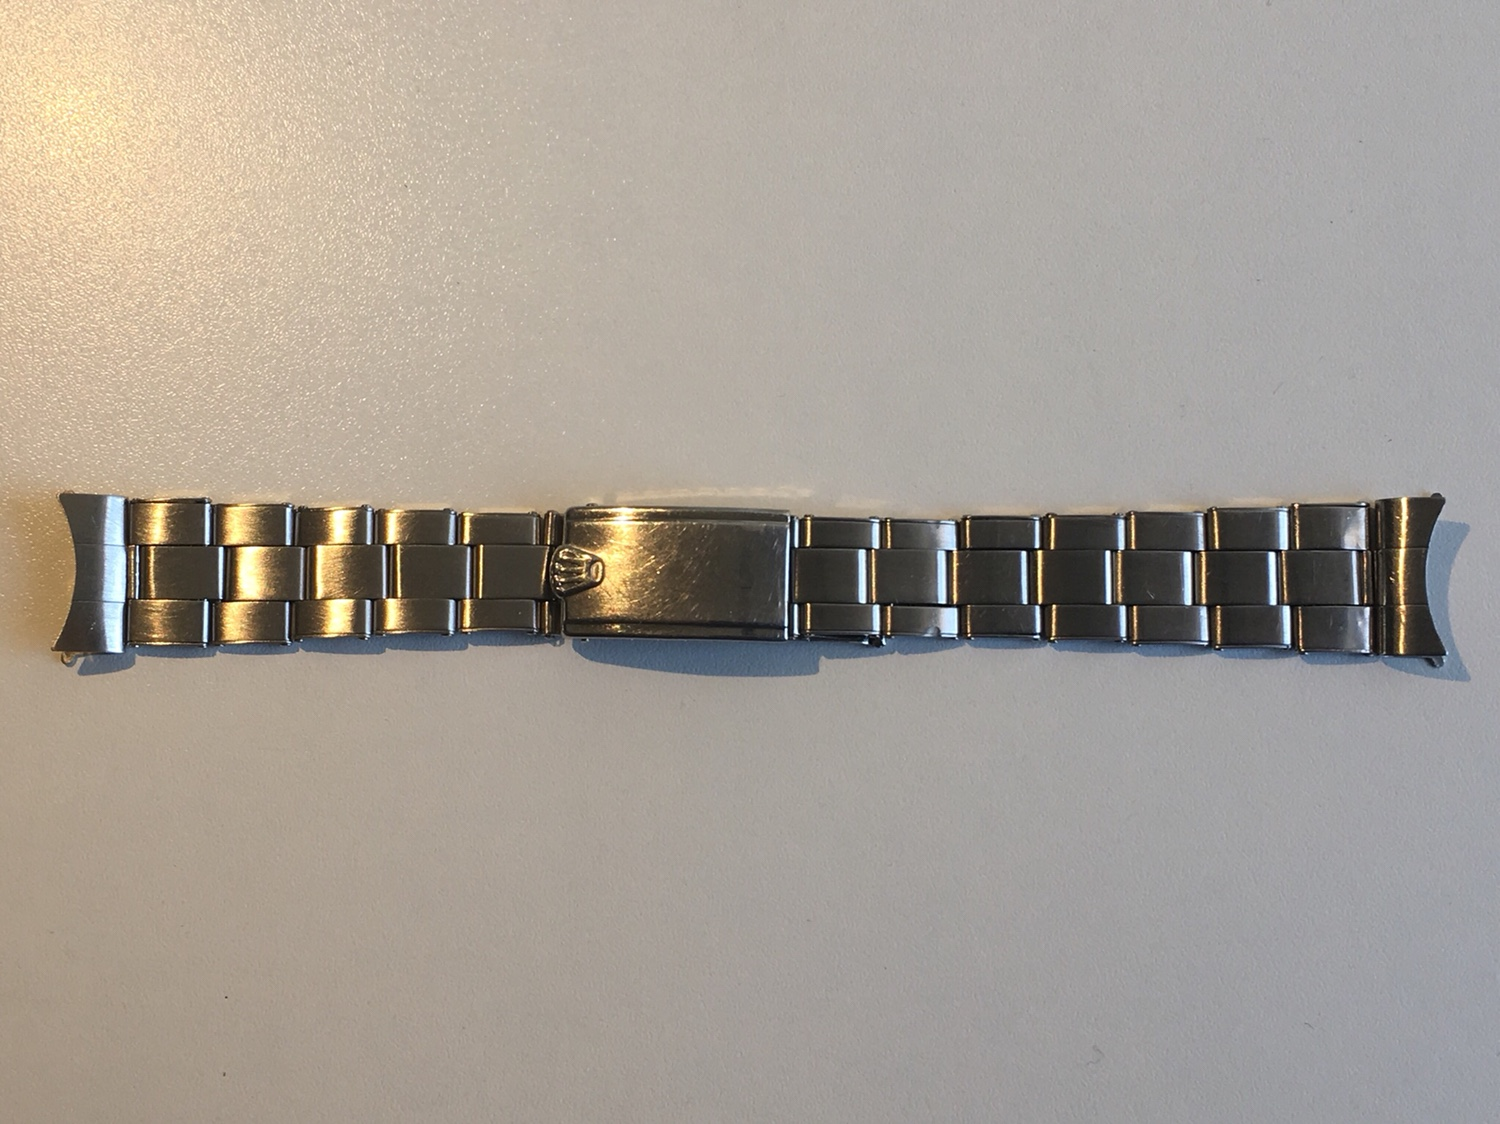 Rolex USA C&I riveted bracelet - Vintage ρολόγια